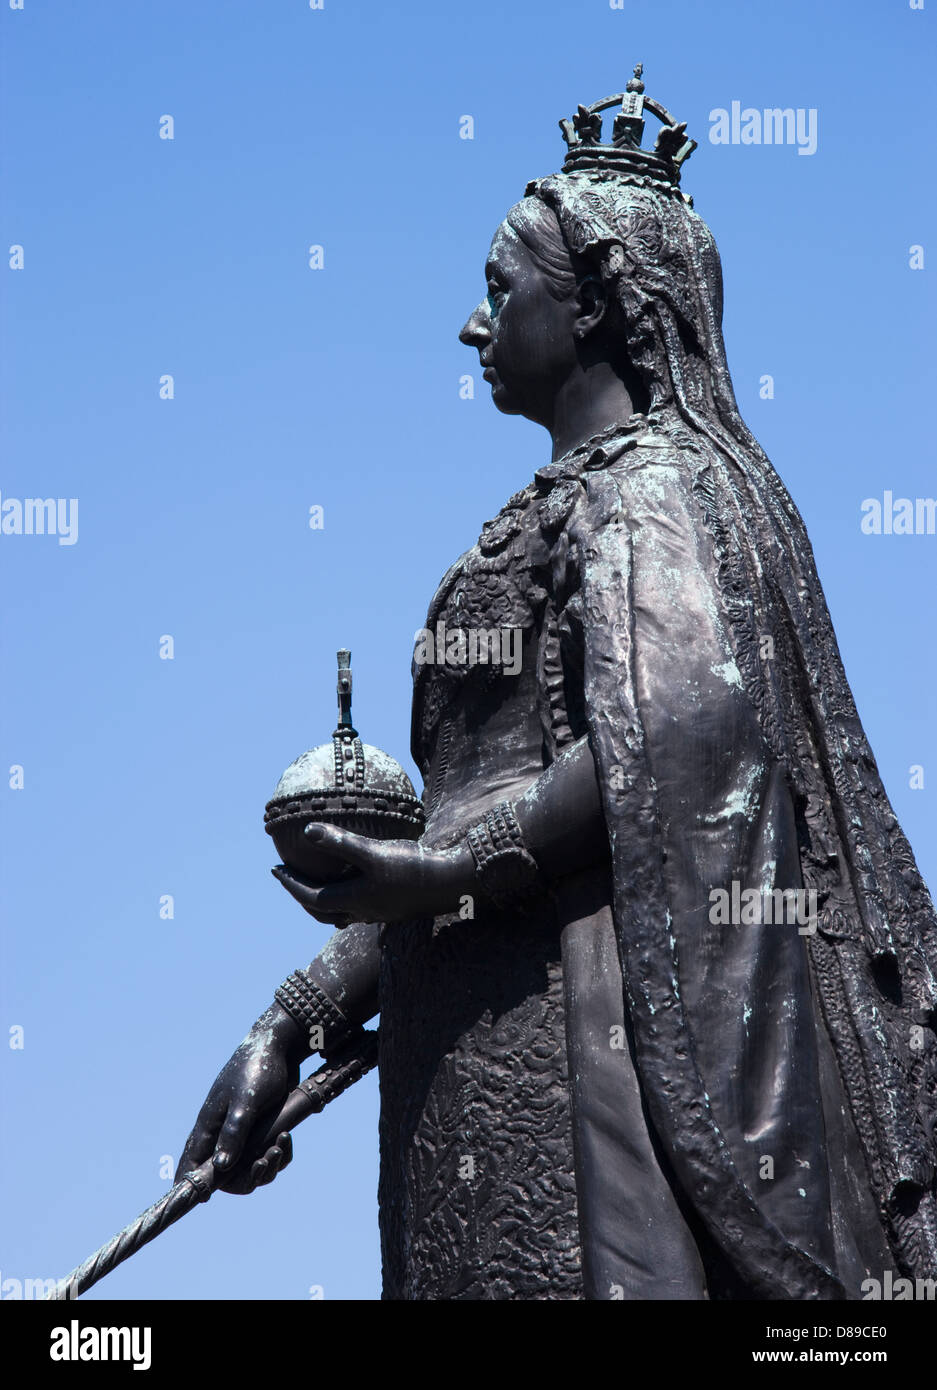 Queen Victoria statue at Windsor Castle, Berkshire, UK. - Stock Image